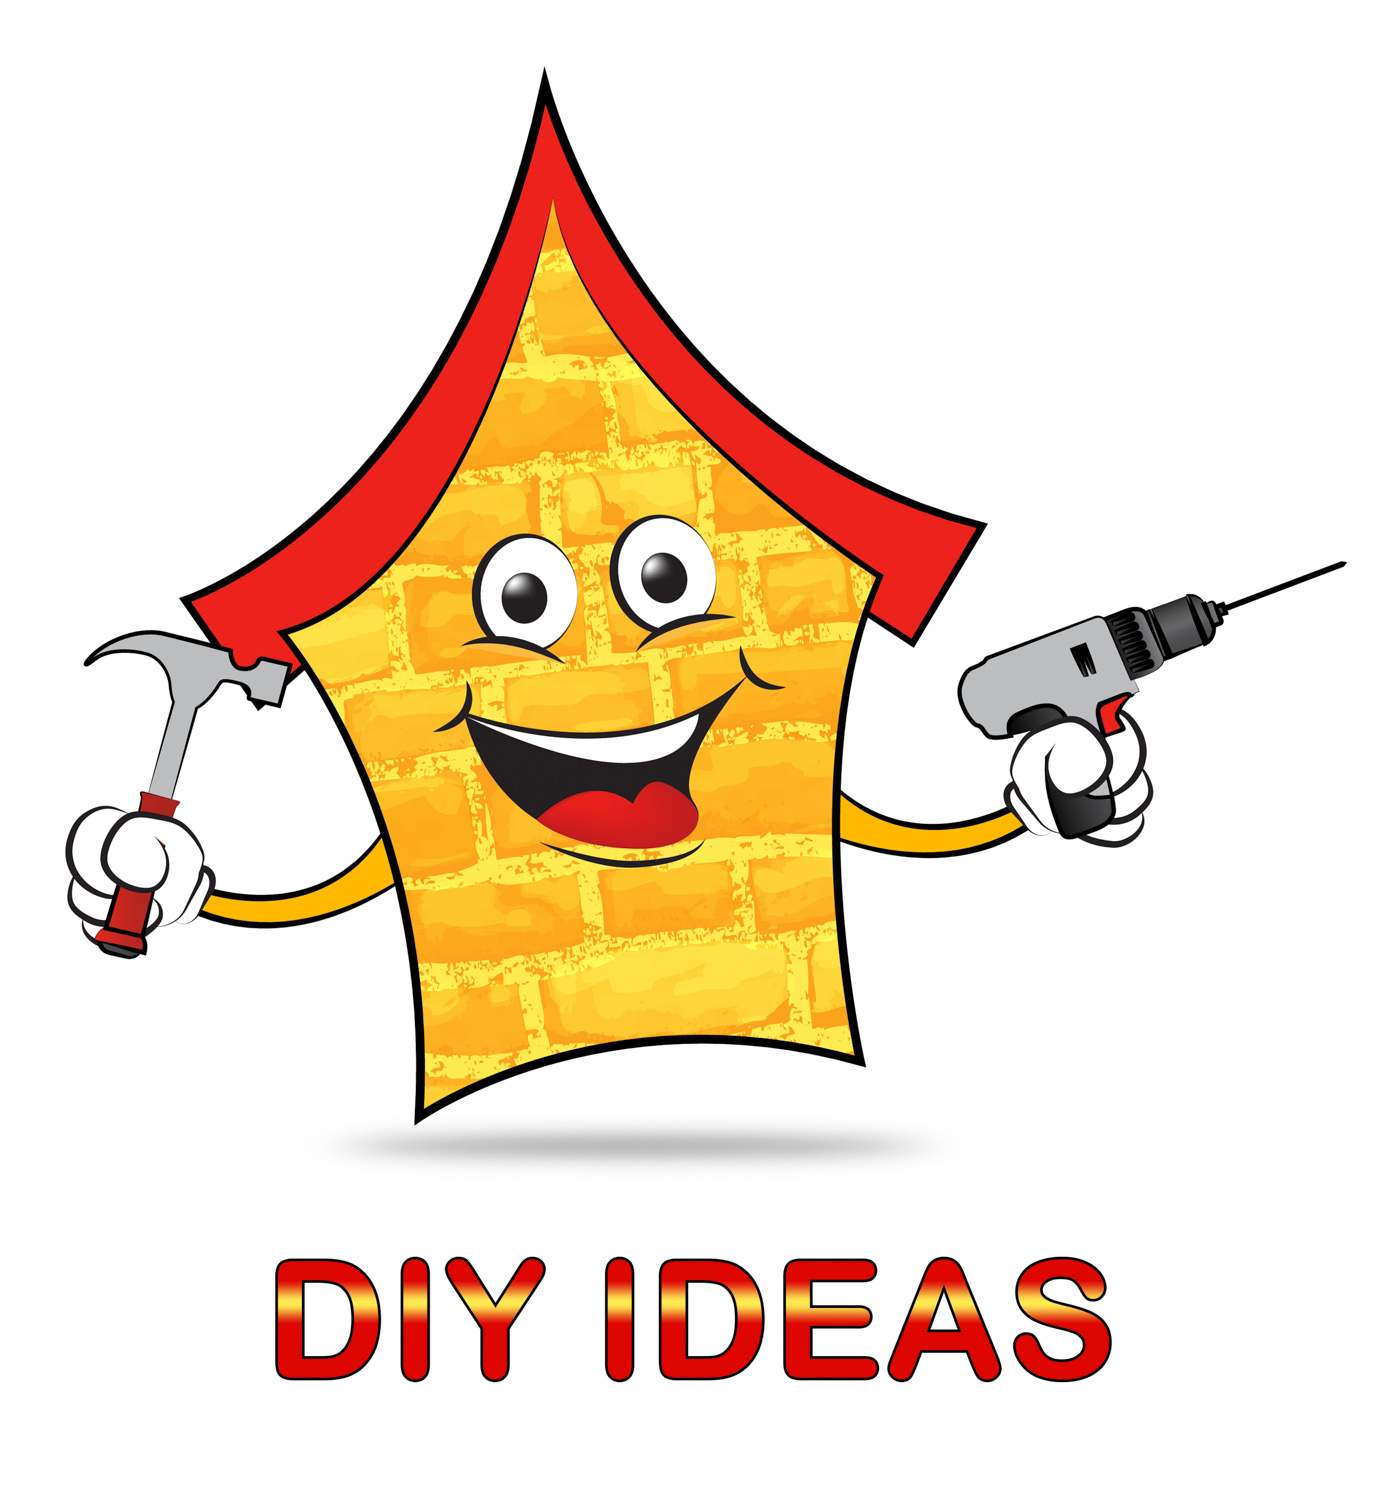 Diy Ideas Indicates Do It Yourself And Renovation, Remodelling, Remodel, Renovate, Renovating, HQ Photo